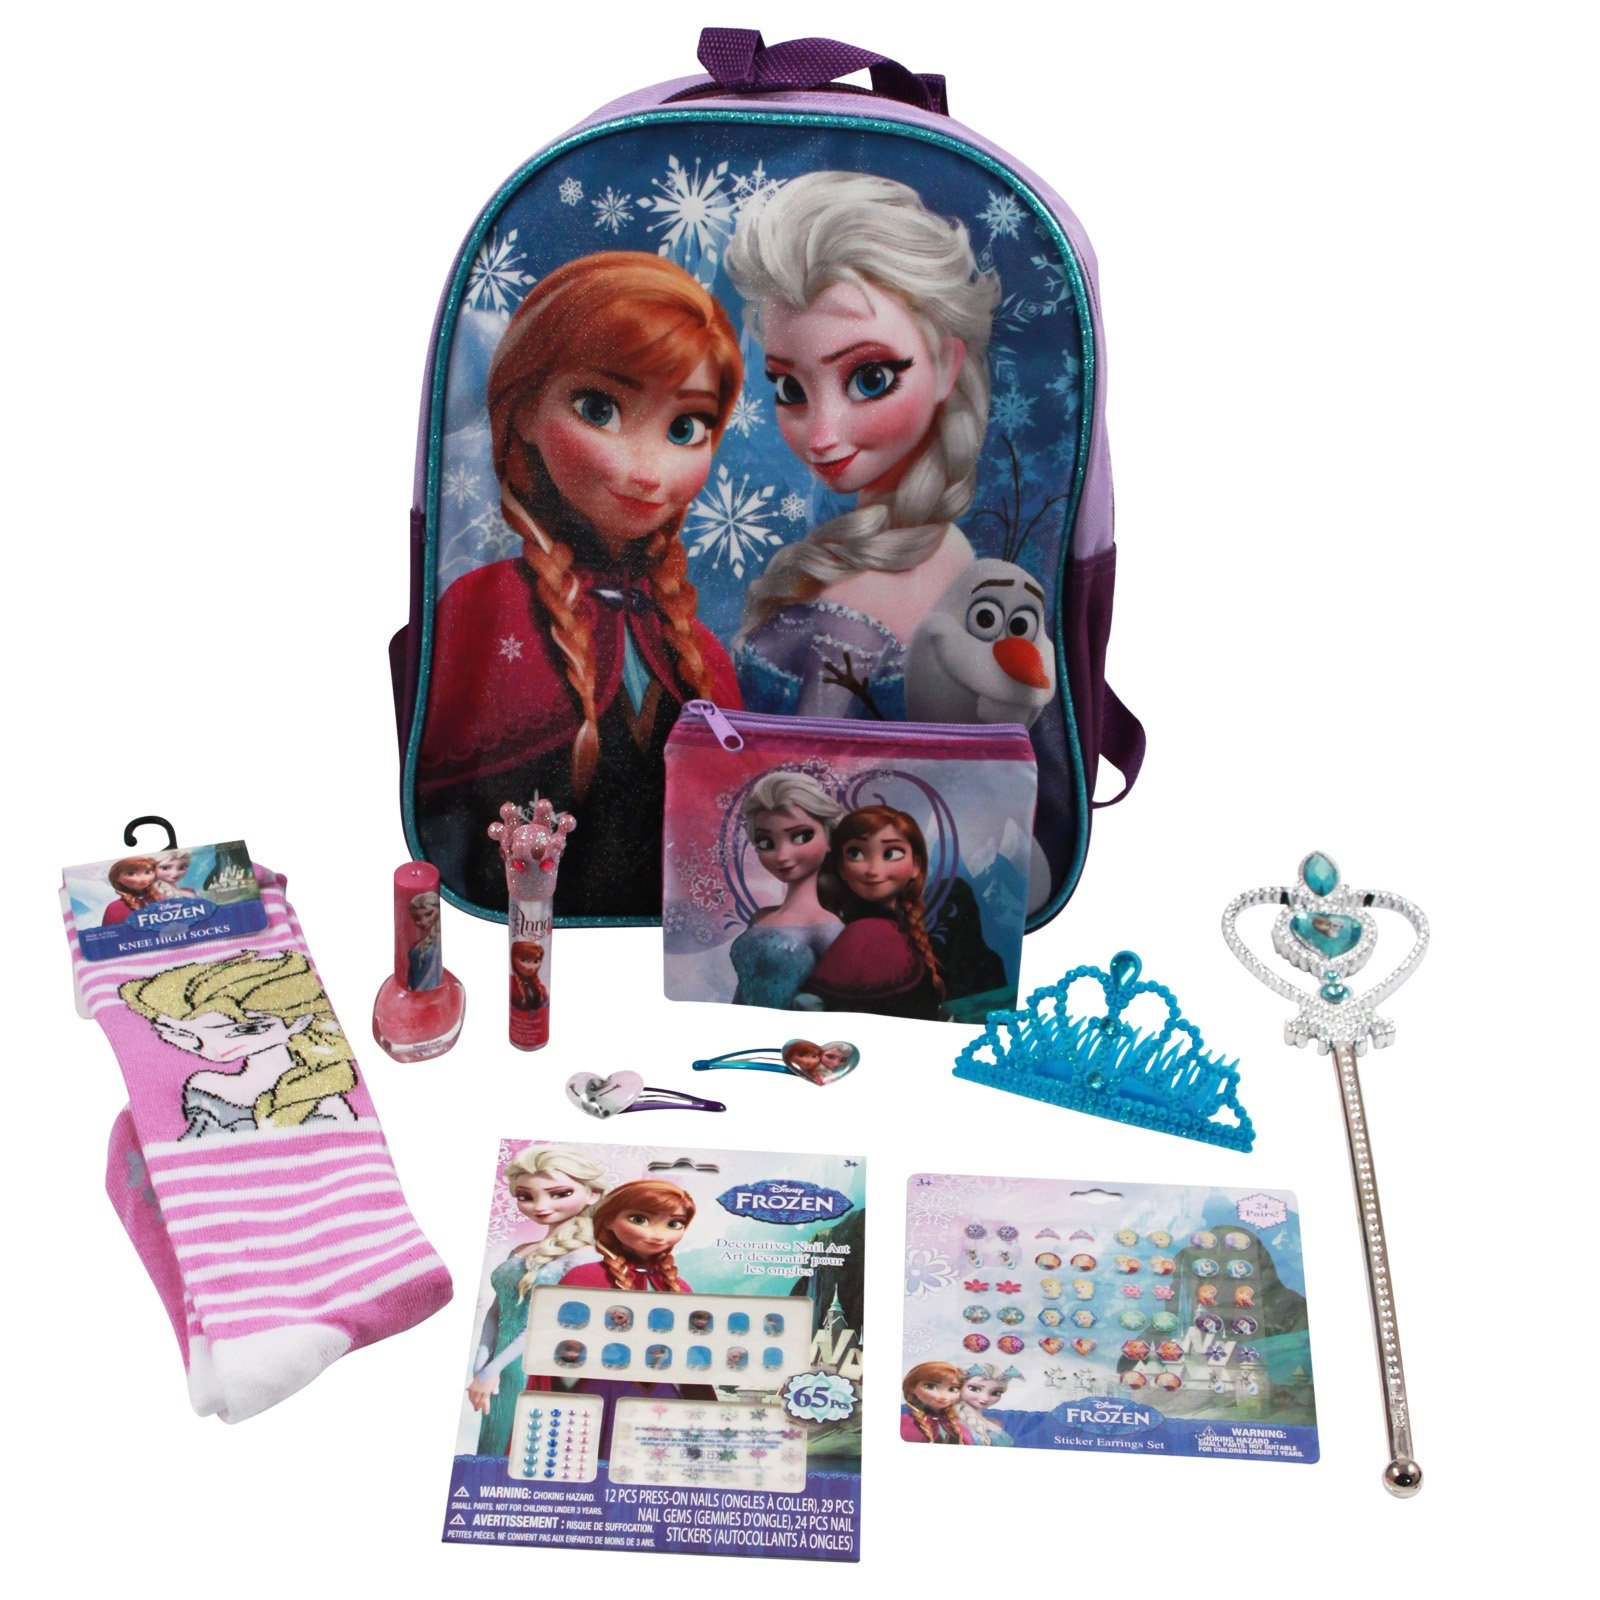 Disney Frozen Girls Halloween Costume Set Backpack Wand Tiara Earrings Nails Socks